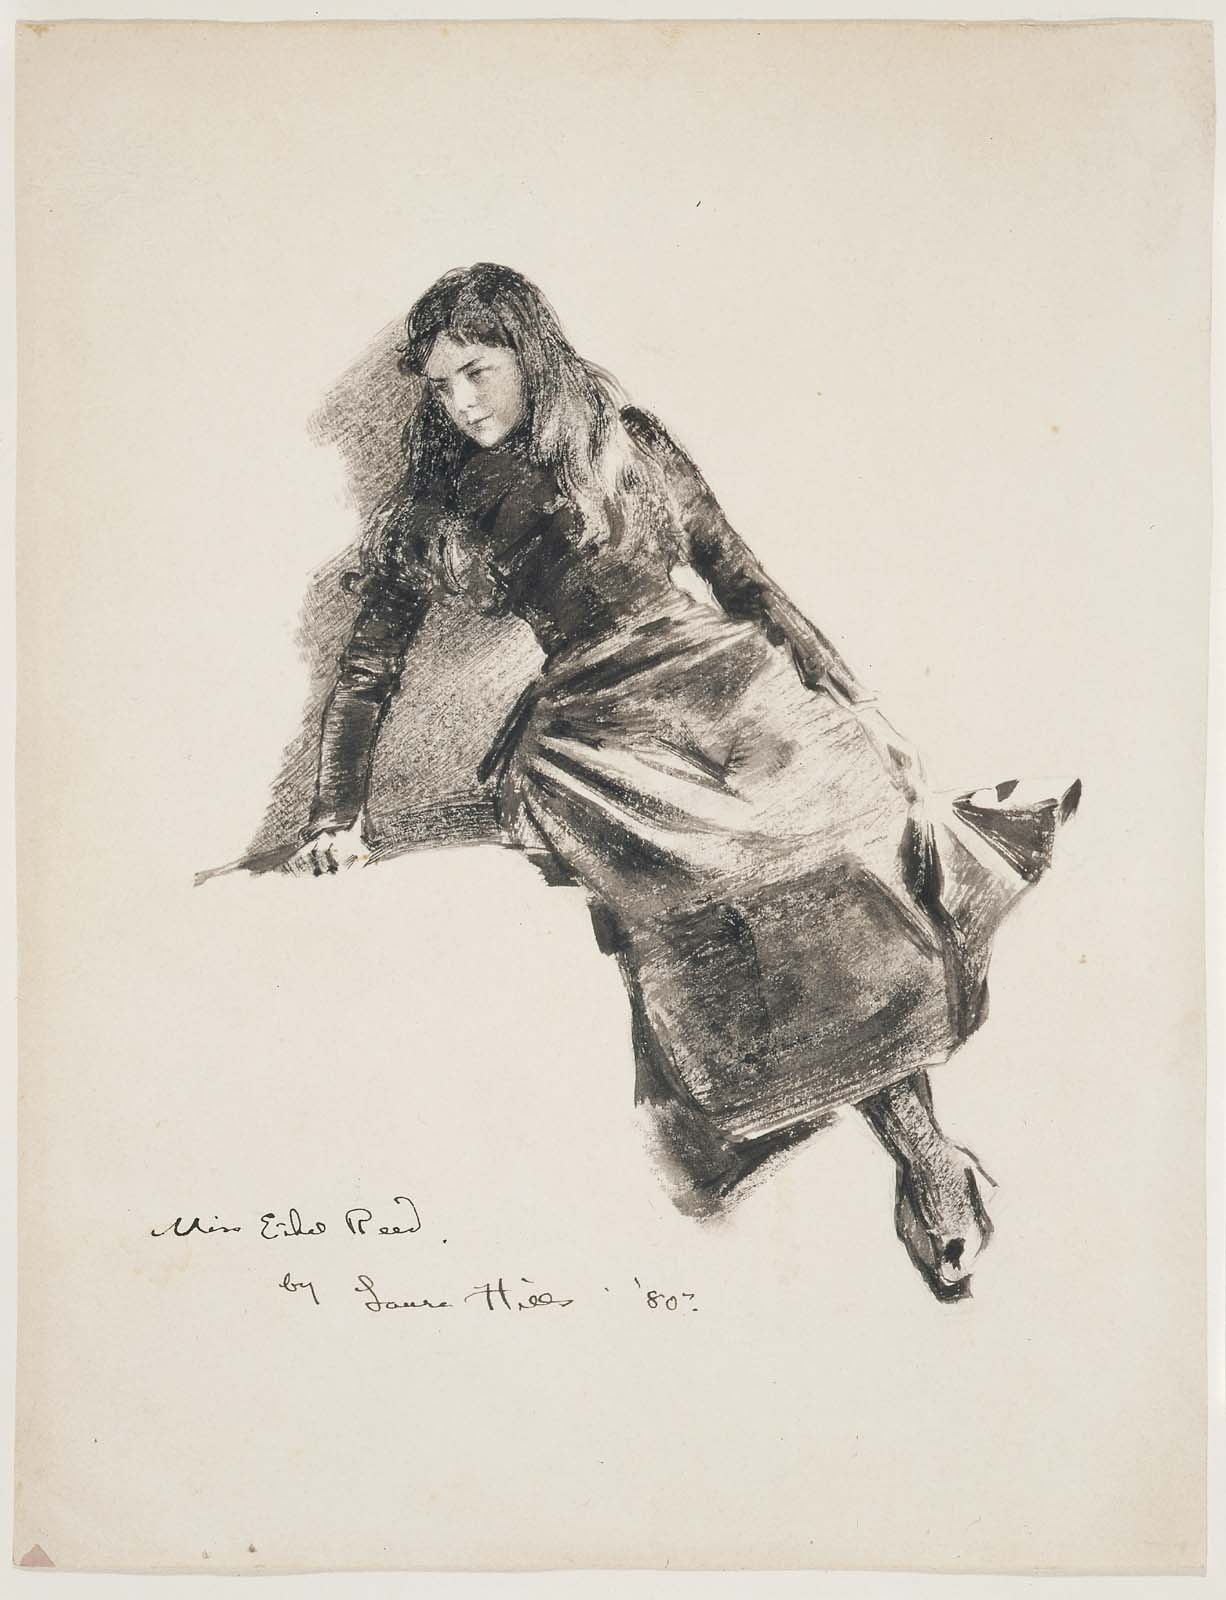 Ethel Reed, by Laura Coombs Hill, 1880, 10 x 7 3/4 inches Wash and chalk on paper, Museum of Fine Arts, Boston